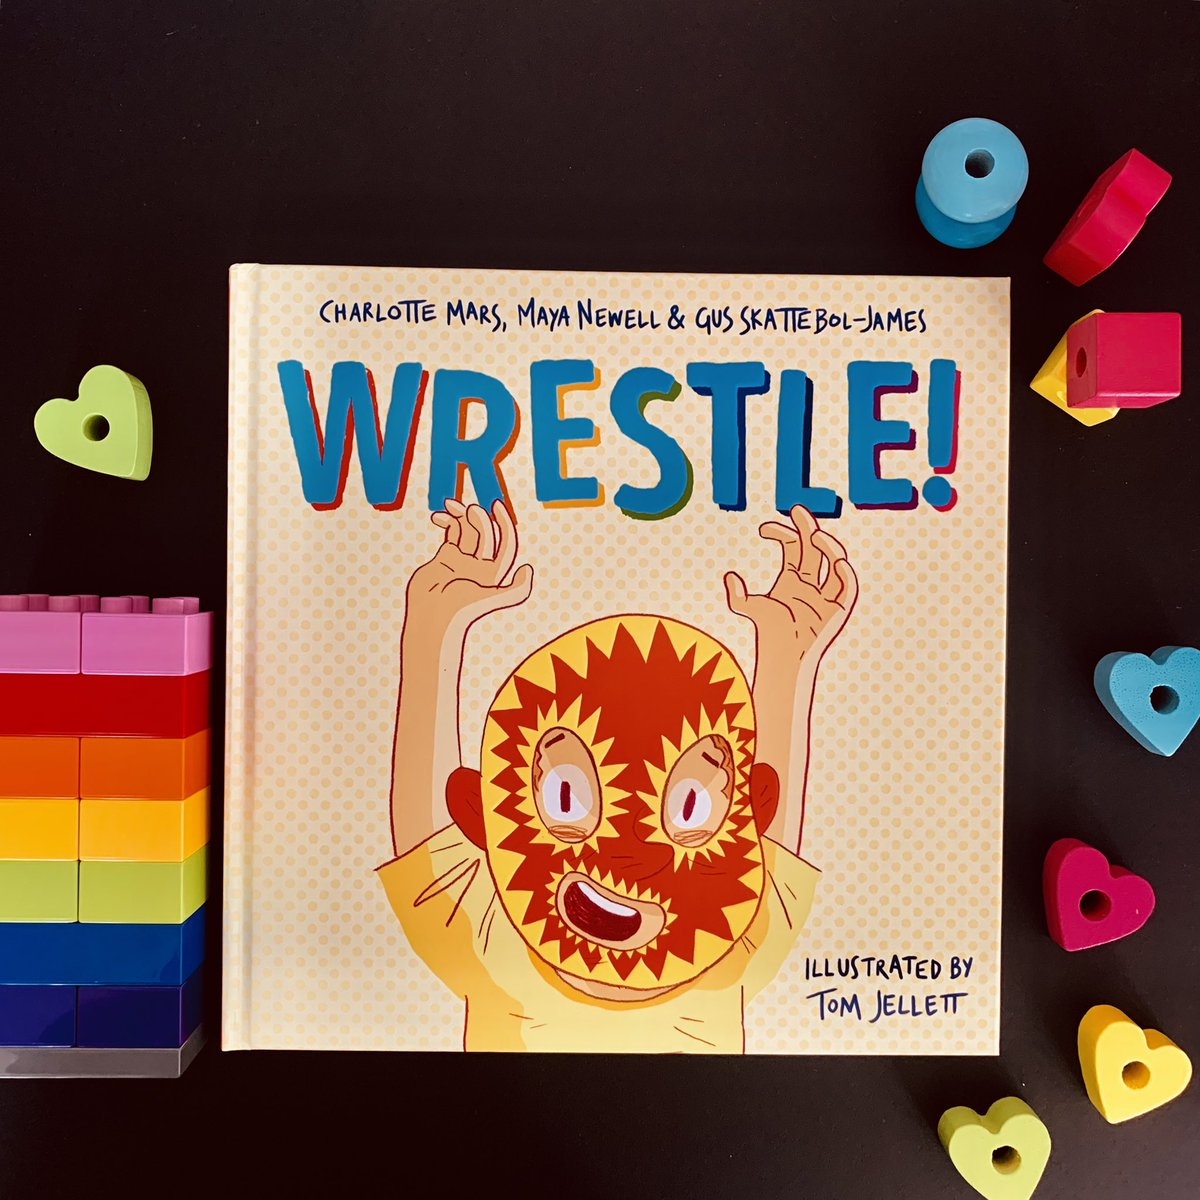 So thrilled to have had #author and #filmmaker #MayaNewell on the podcast talking about the #picturebook #Wrestle an important read about #family #masculinity & the #mardigras 🌈 #LGBTQIA #LGBT #GaybyBaby https://soundcloud.com/user-703706220/114-maya-newell-wrestle-gayby-baby-masculinity…